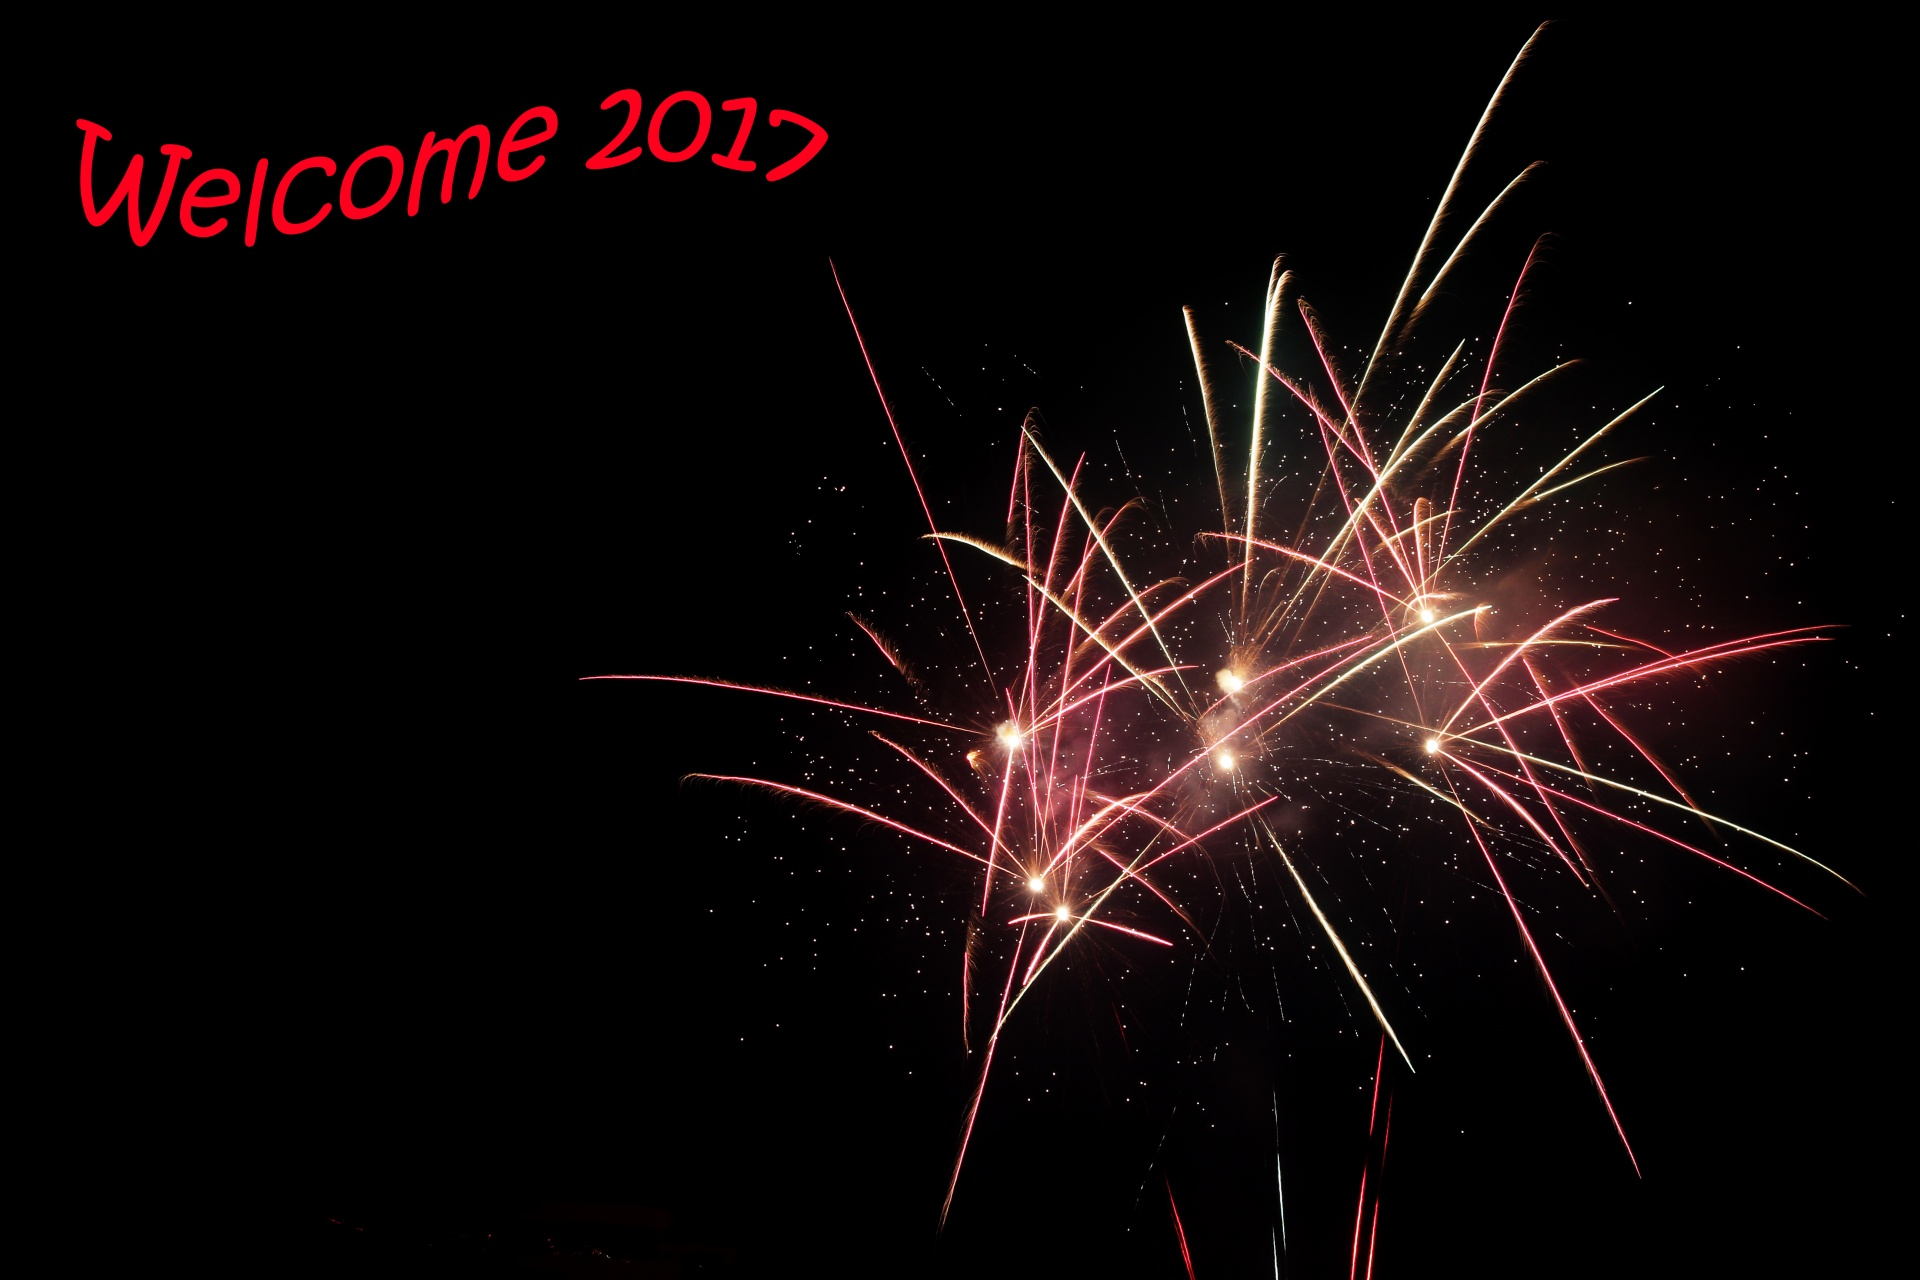 Welcome 2017 Fireworks